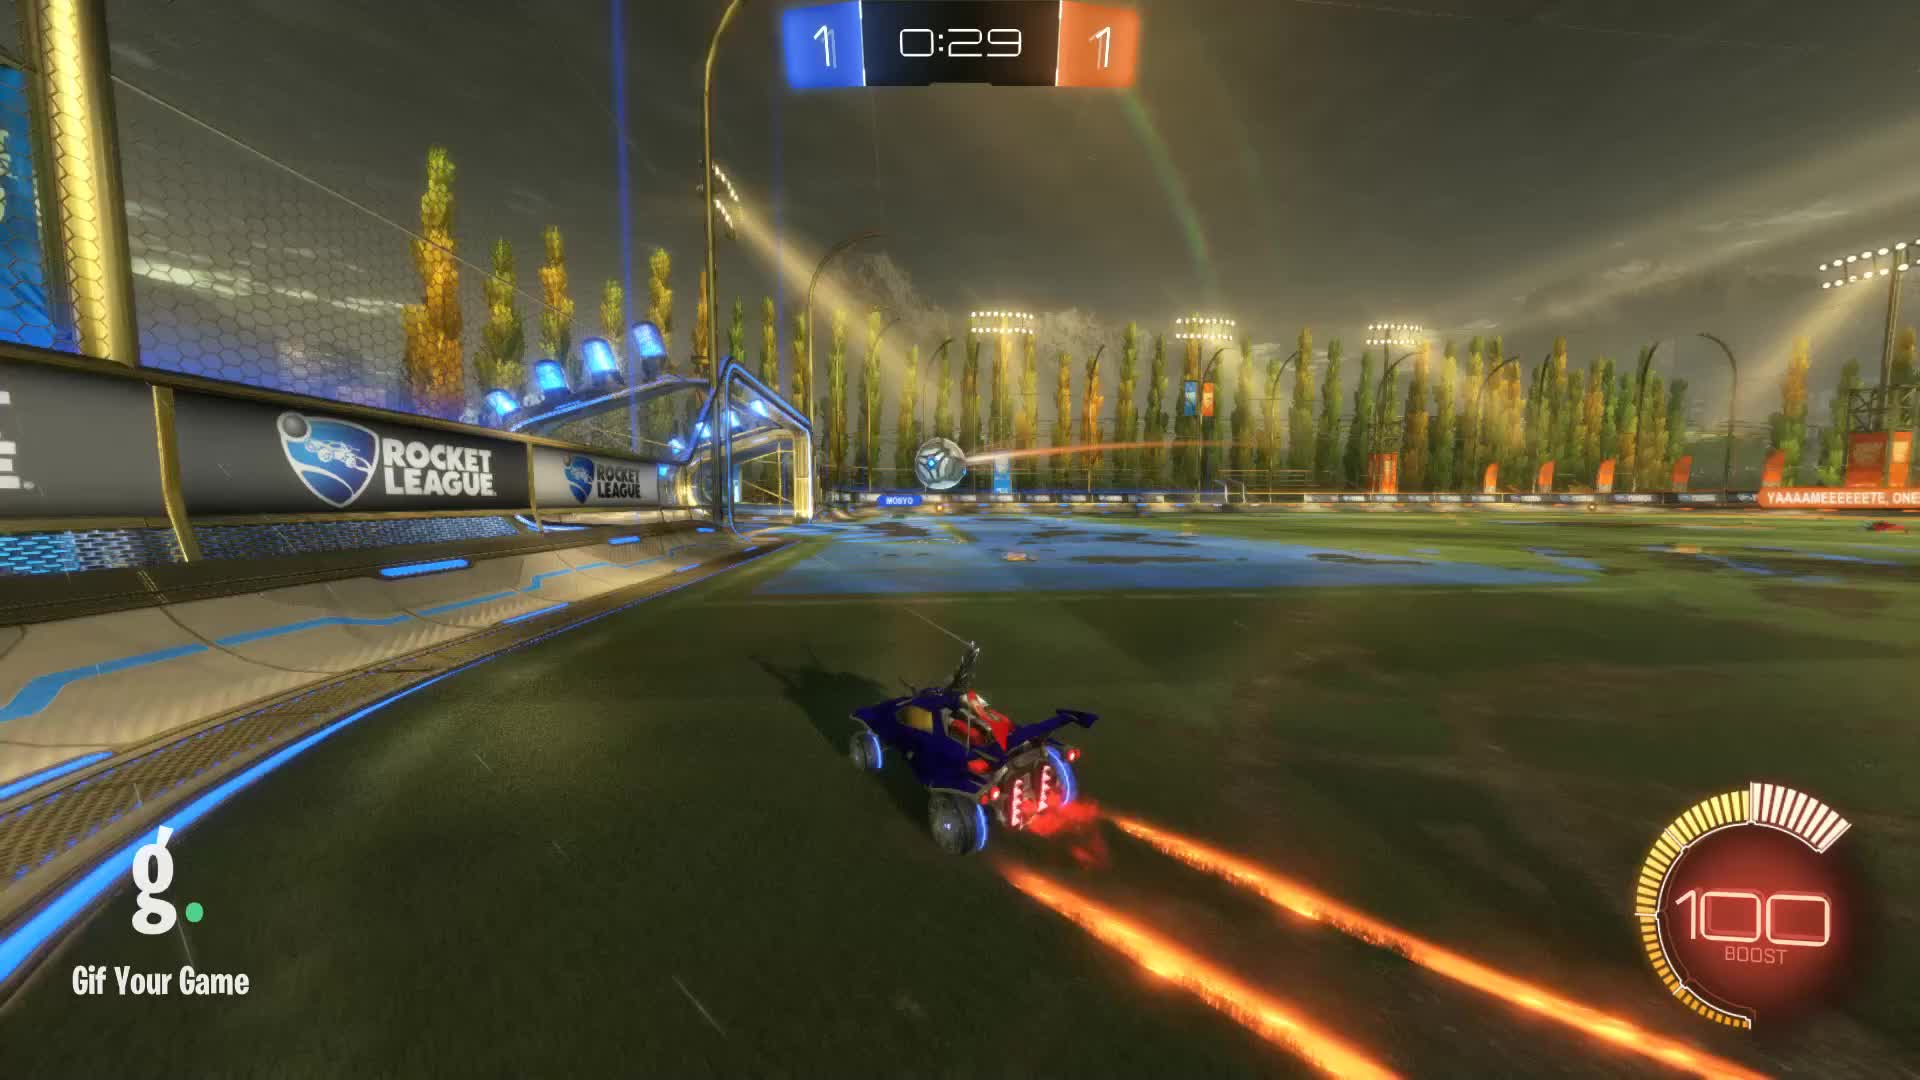 Galata-saray12, Gif Your Game, GifYourGame, Goal, Rocket League, RocketLeague, Goal 3: Galata-saray12 GIFs